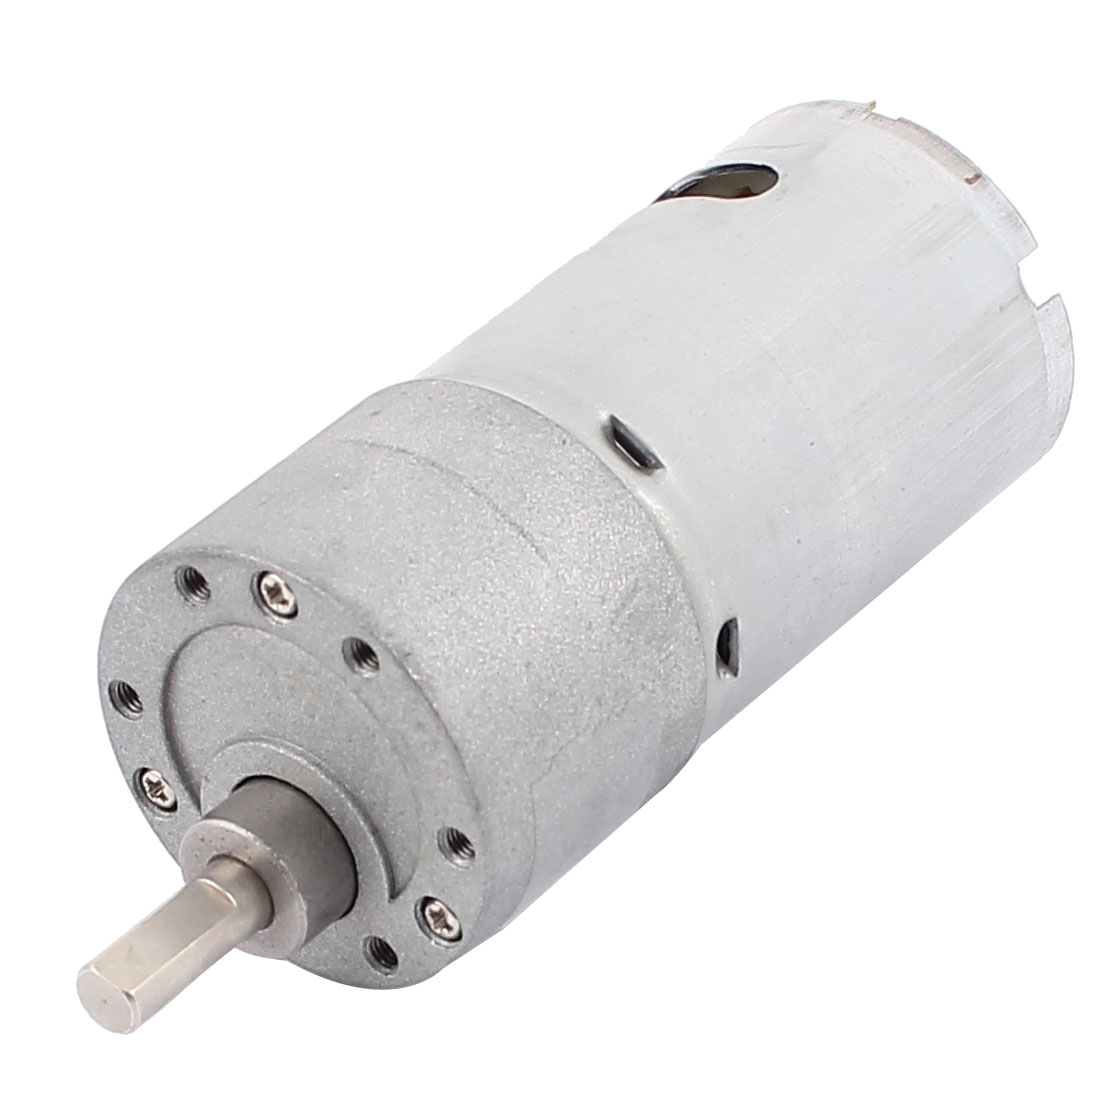 12V 60RPM High Speed 6mm D Shaft Electric Micro DC Gearbox Gear Box Motor for RC Model Toy